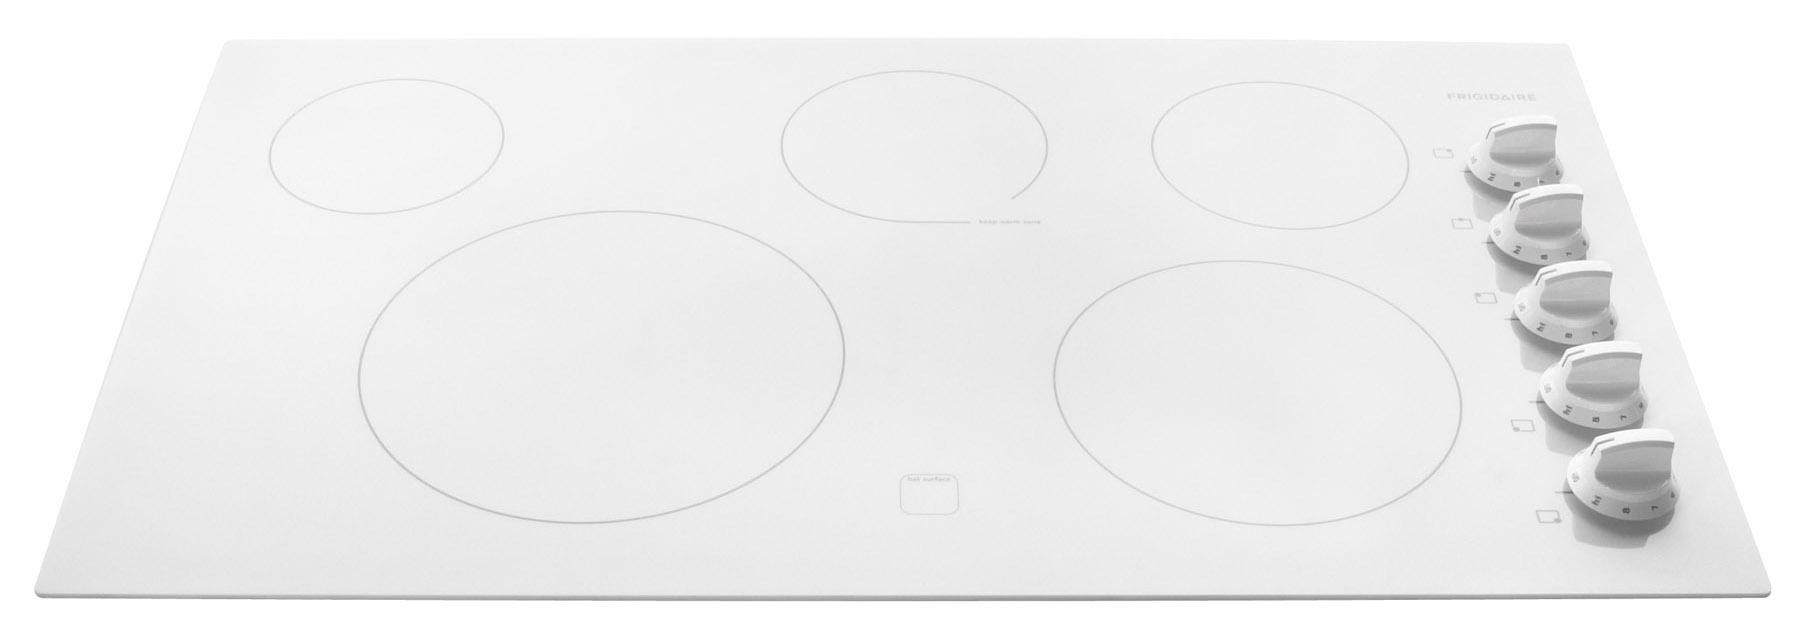 "Frigidaire Electric Cooktops 36"" Built-In Electric Cooktop - Item Number: FFEC3625LW"